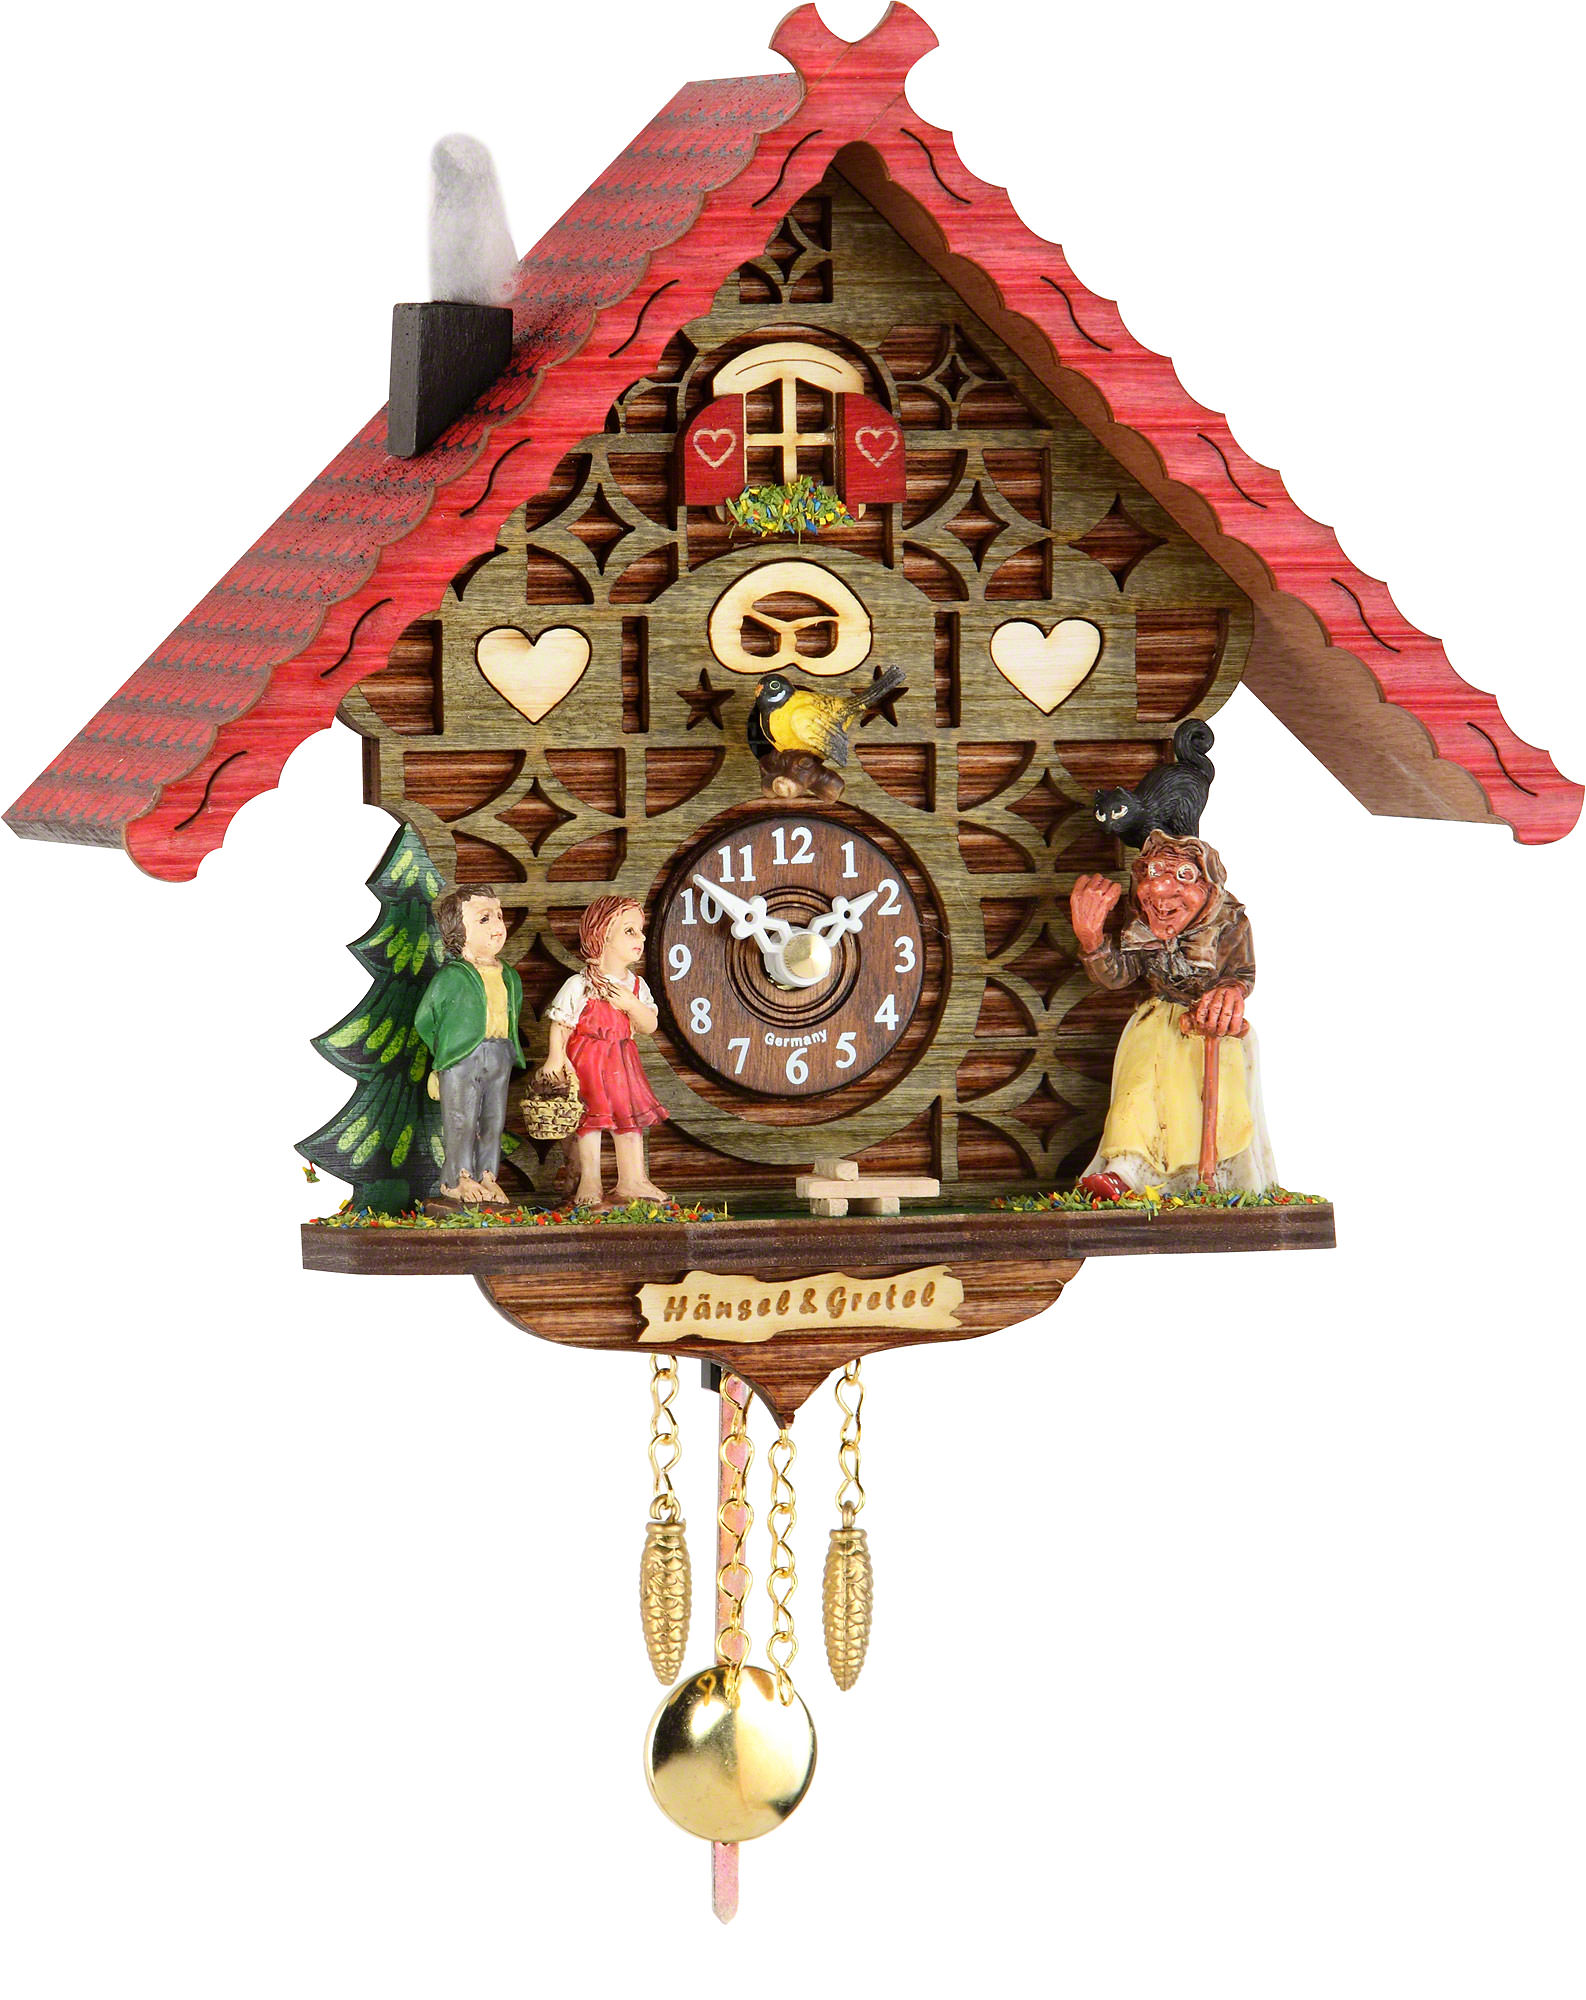 Cuckoo clock kuckulino quartz movement black forest How to make a cuckoo clock